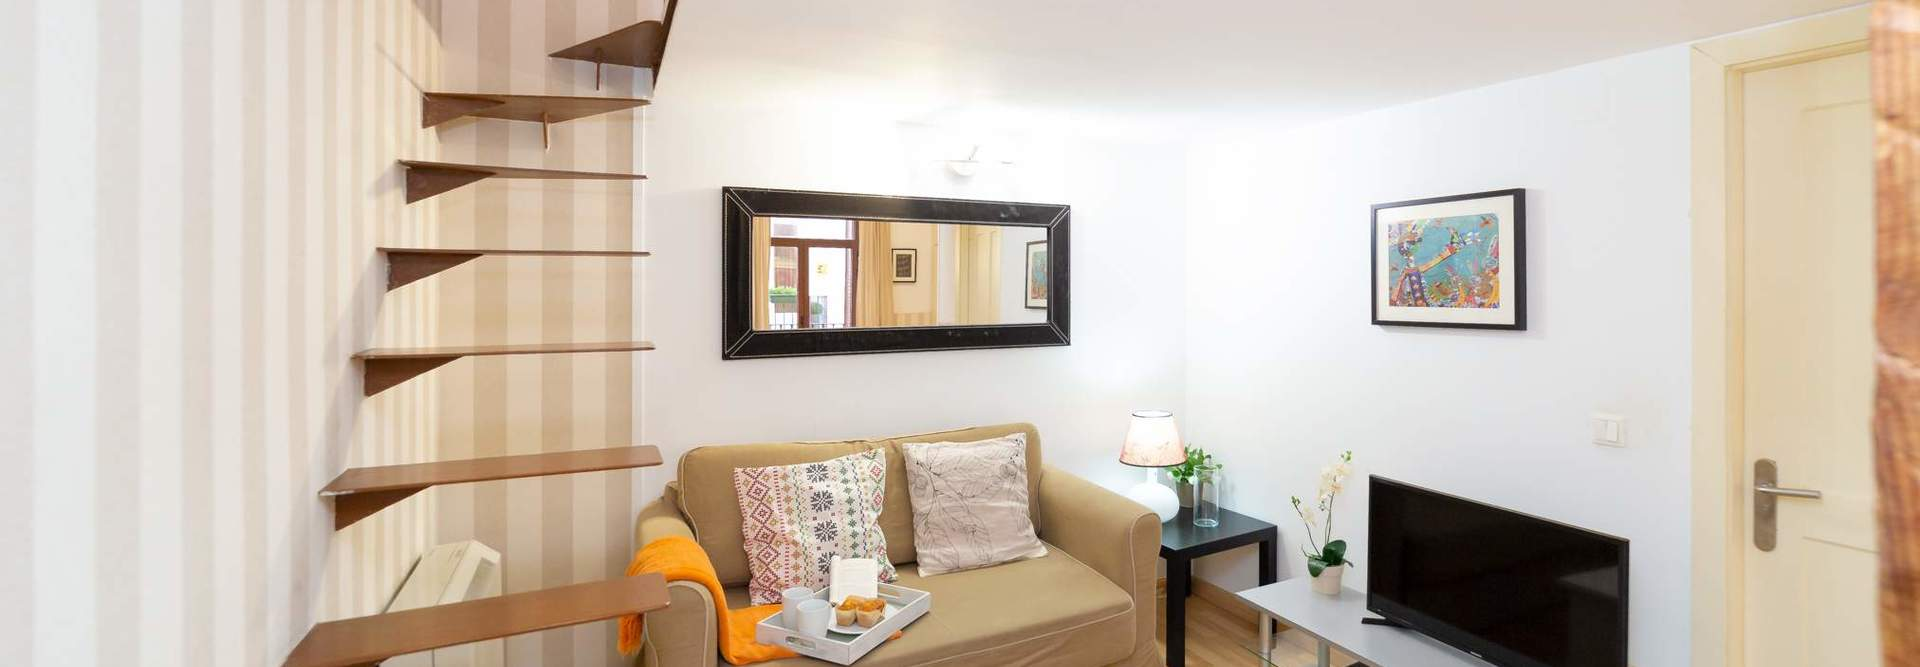 Home alquiler apartamentos madrid mad4rent 30